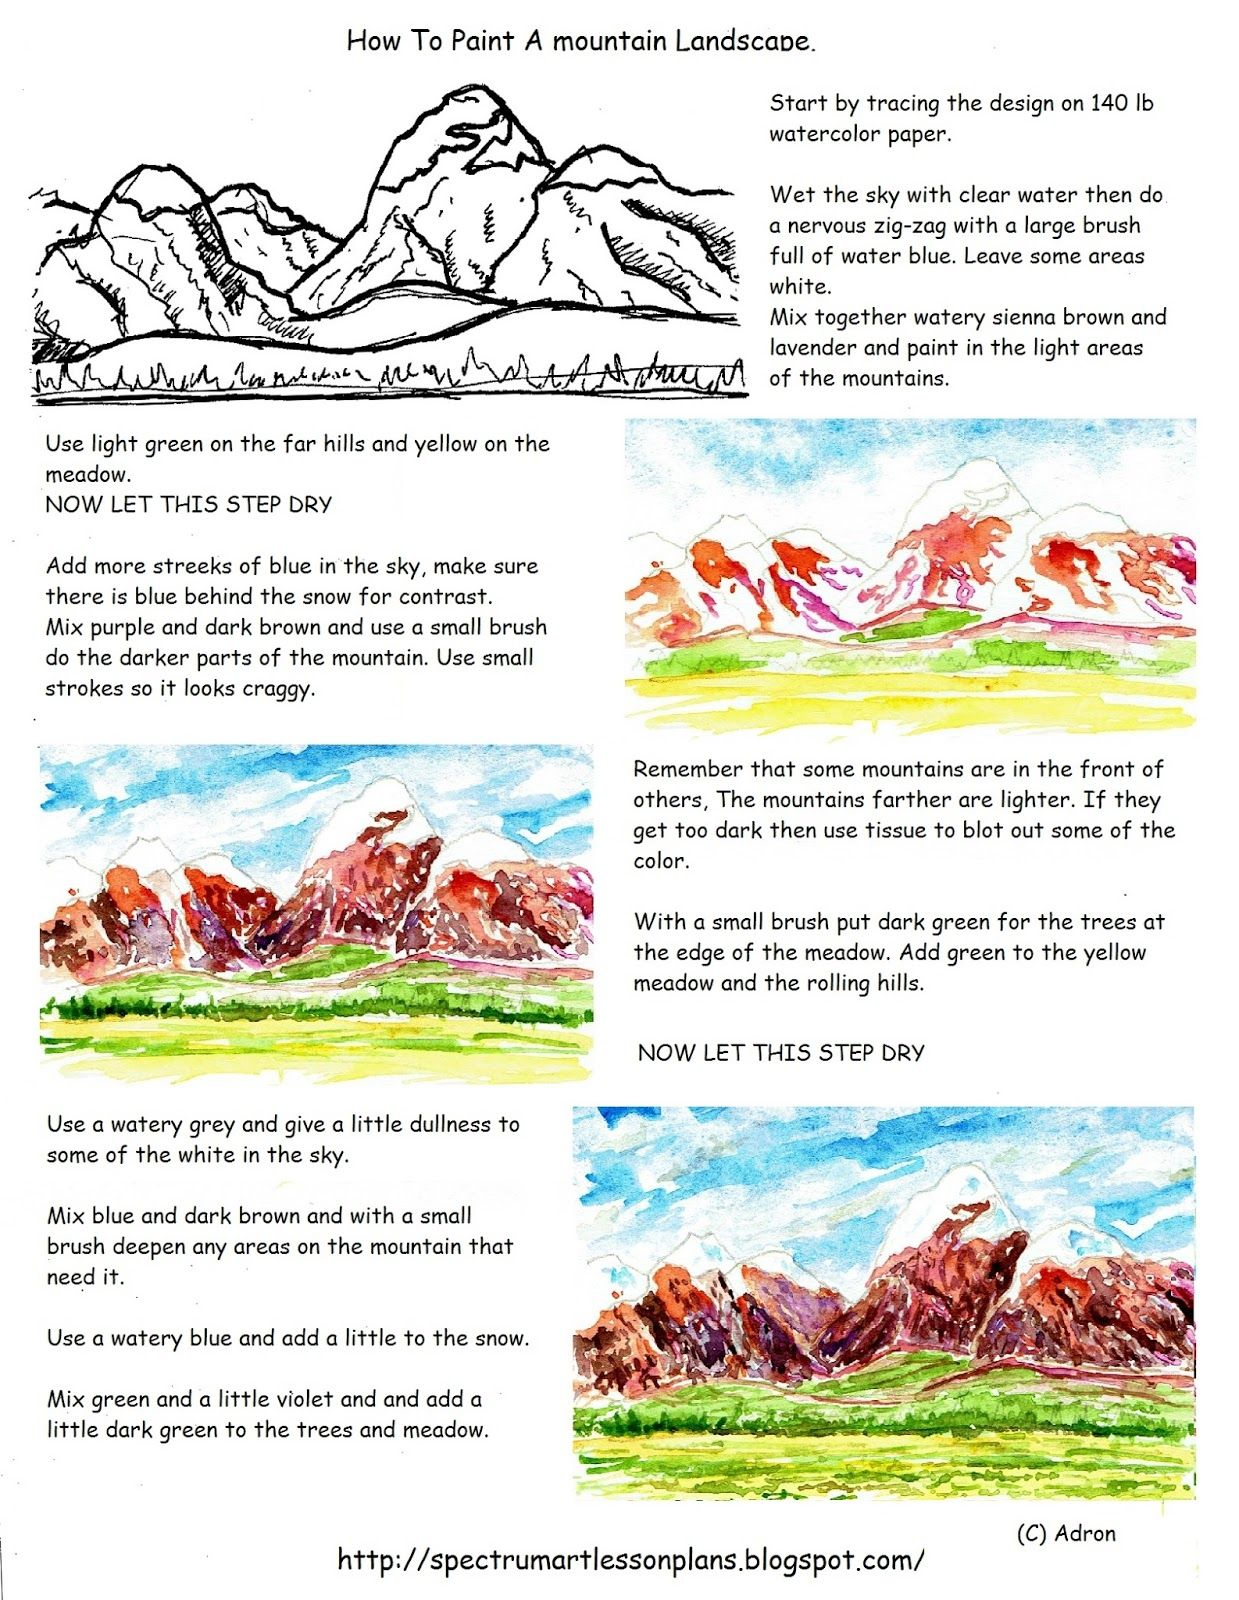 A Printable Worksheet And Art Lesson For The Young Artist That May Be Used By Teachers And